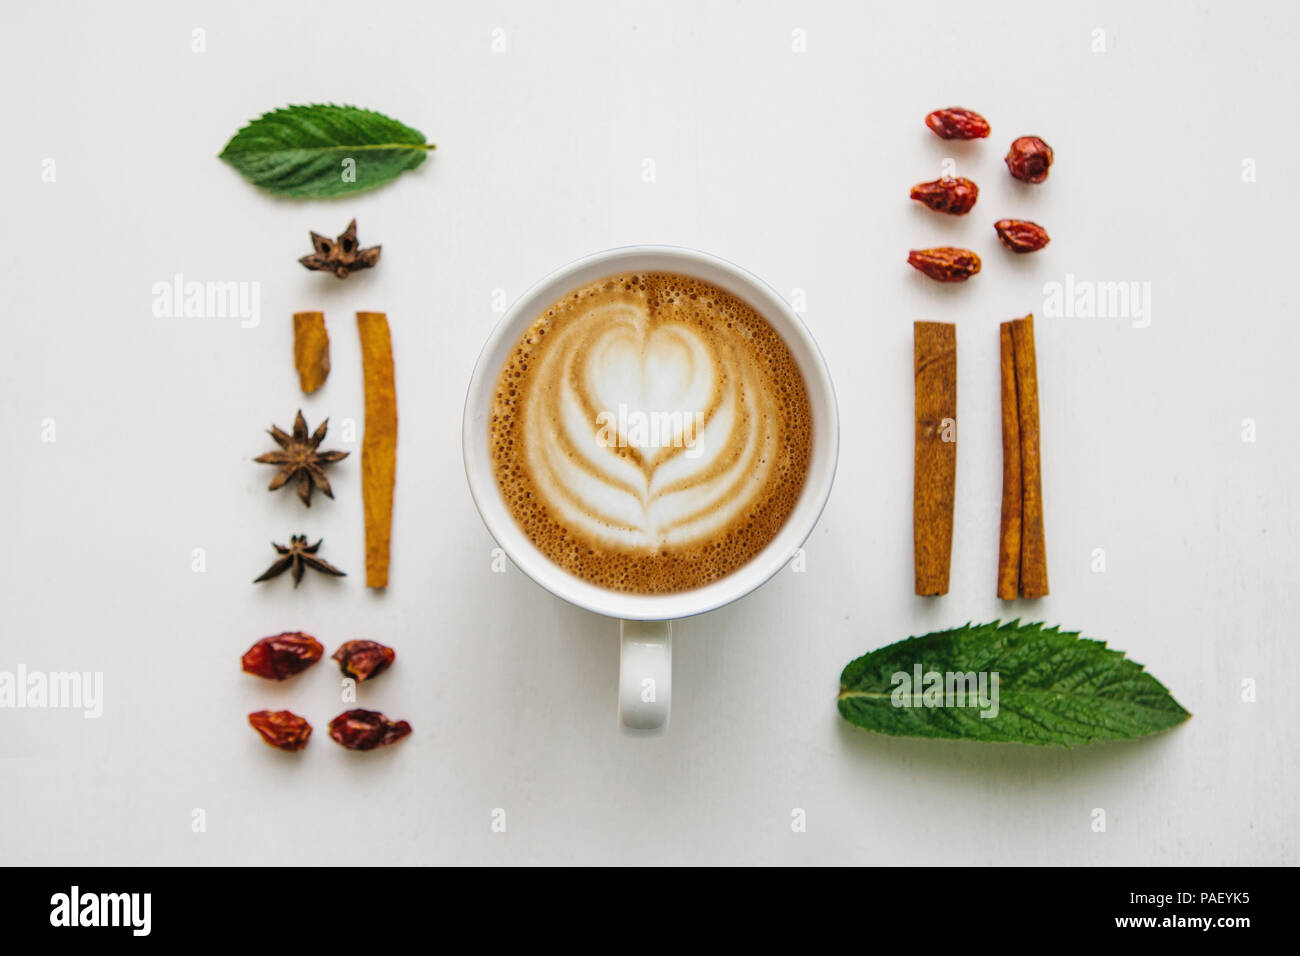 Flat lay a cup of delicious fresh cappuccino on a white surface and various ingredients. - Stock Image